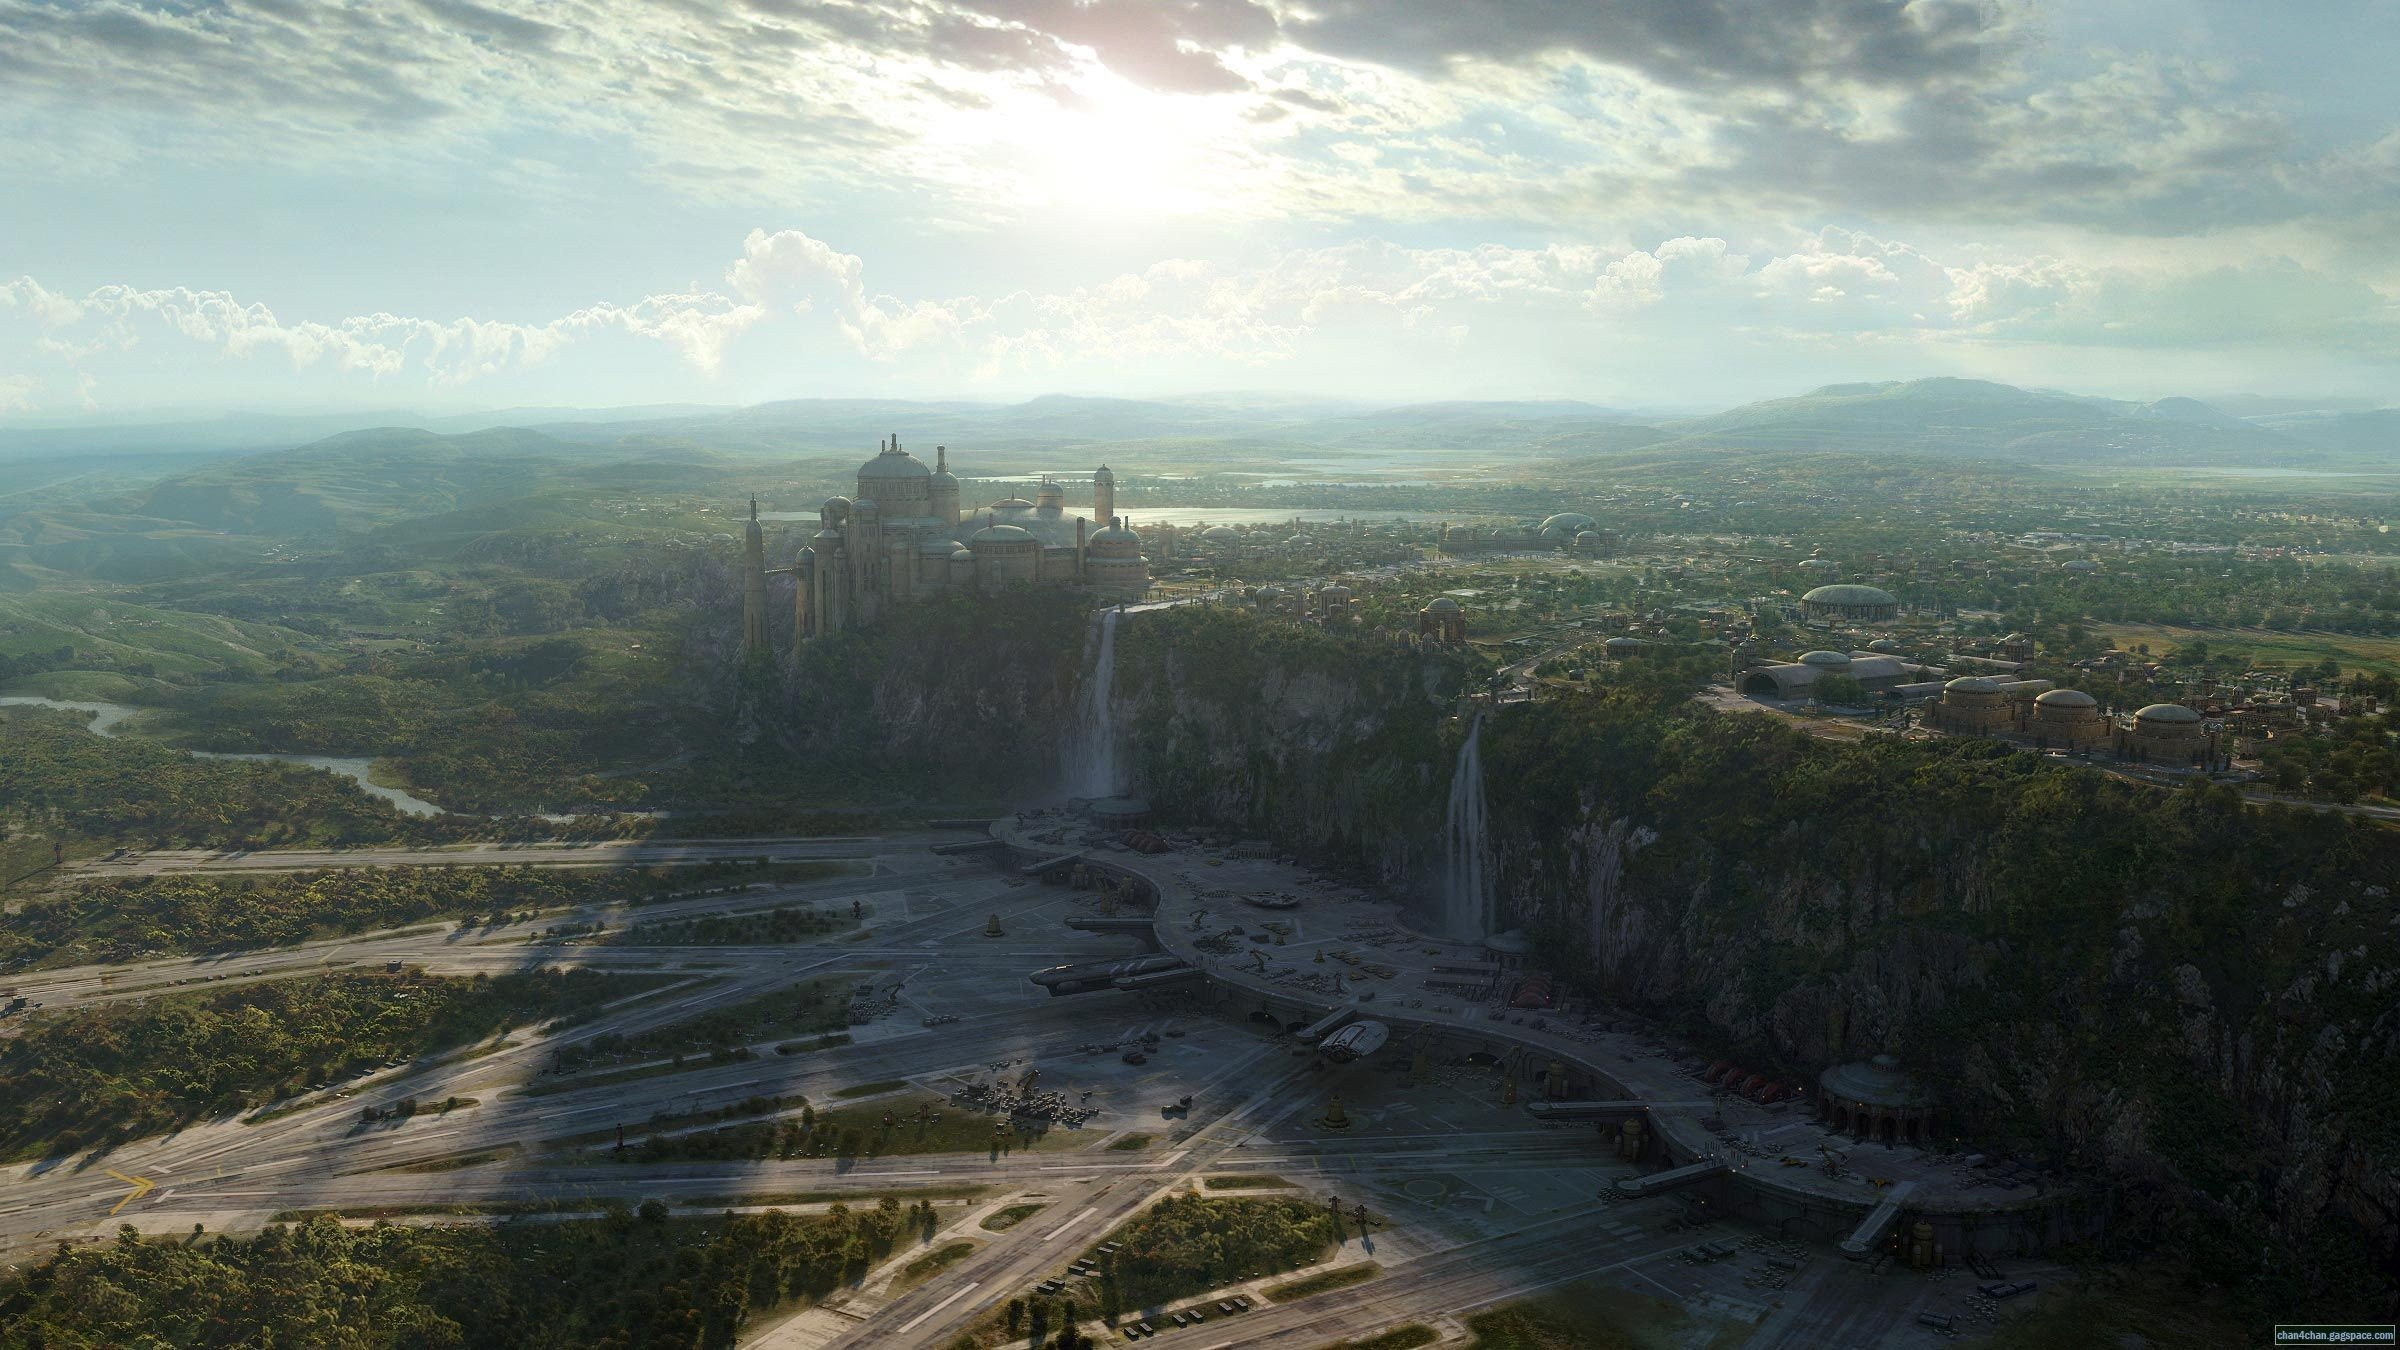 20559 Naboo images backgrounds 2019 2400x1350